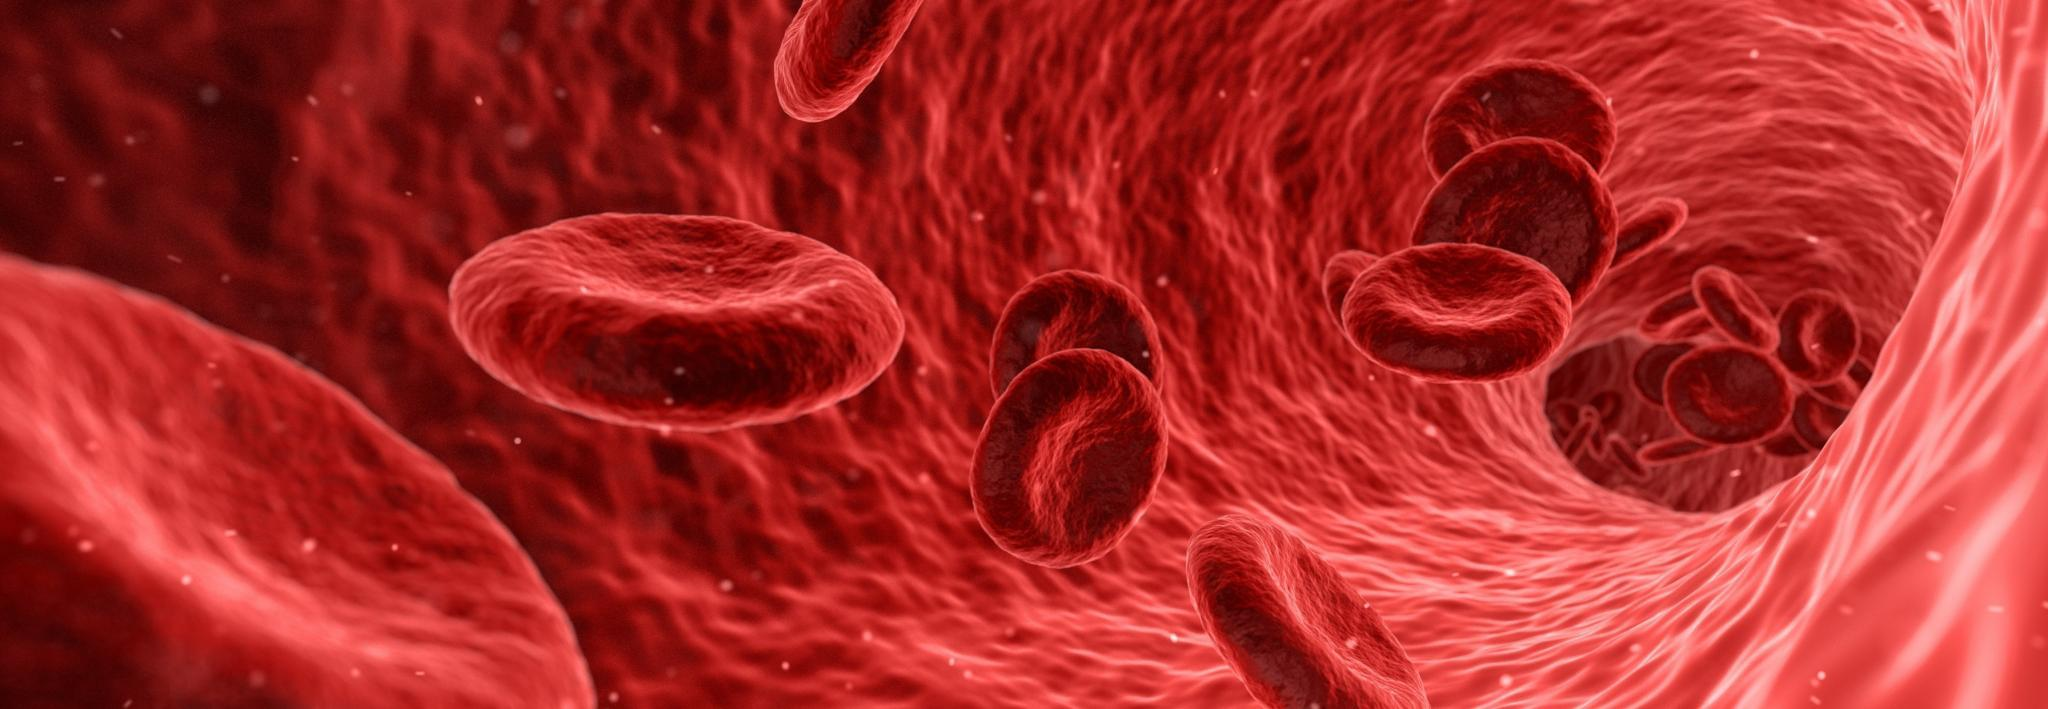 Artist impression of red blood cells in a blood vessel